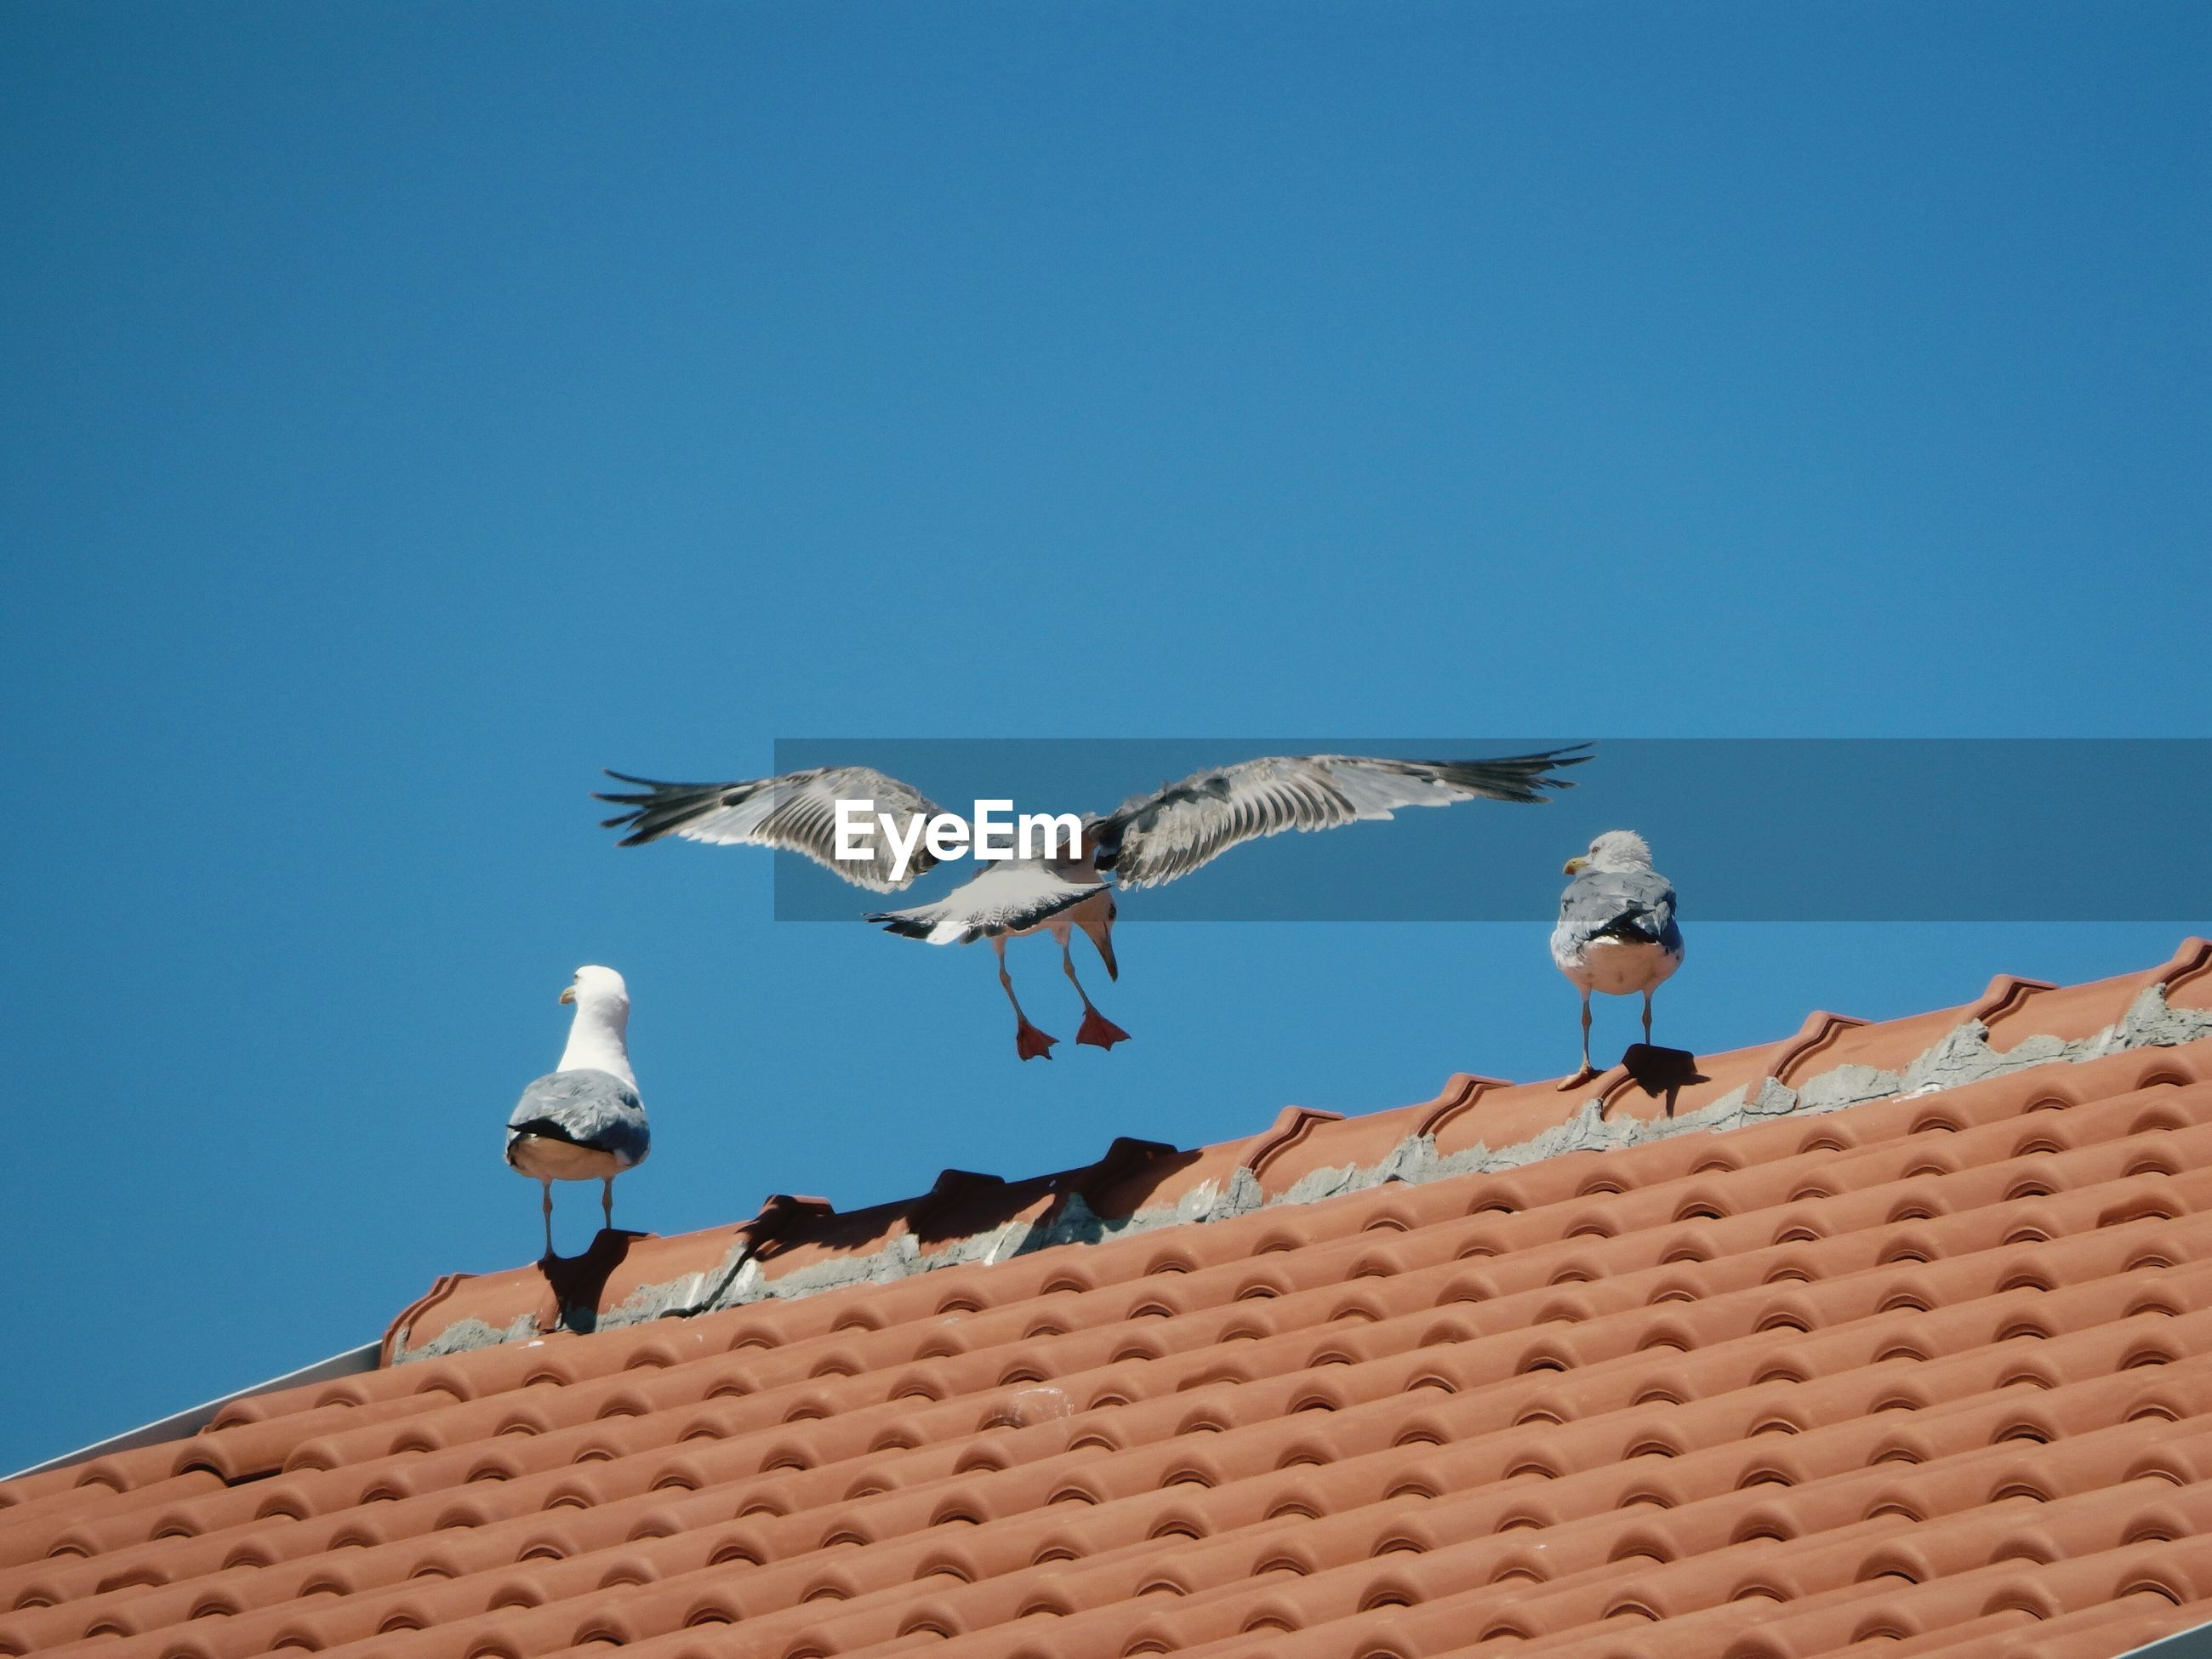 Low angle view of seagulls on roof against clear blue sky